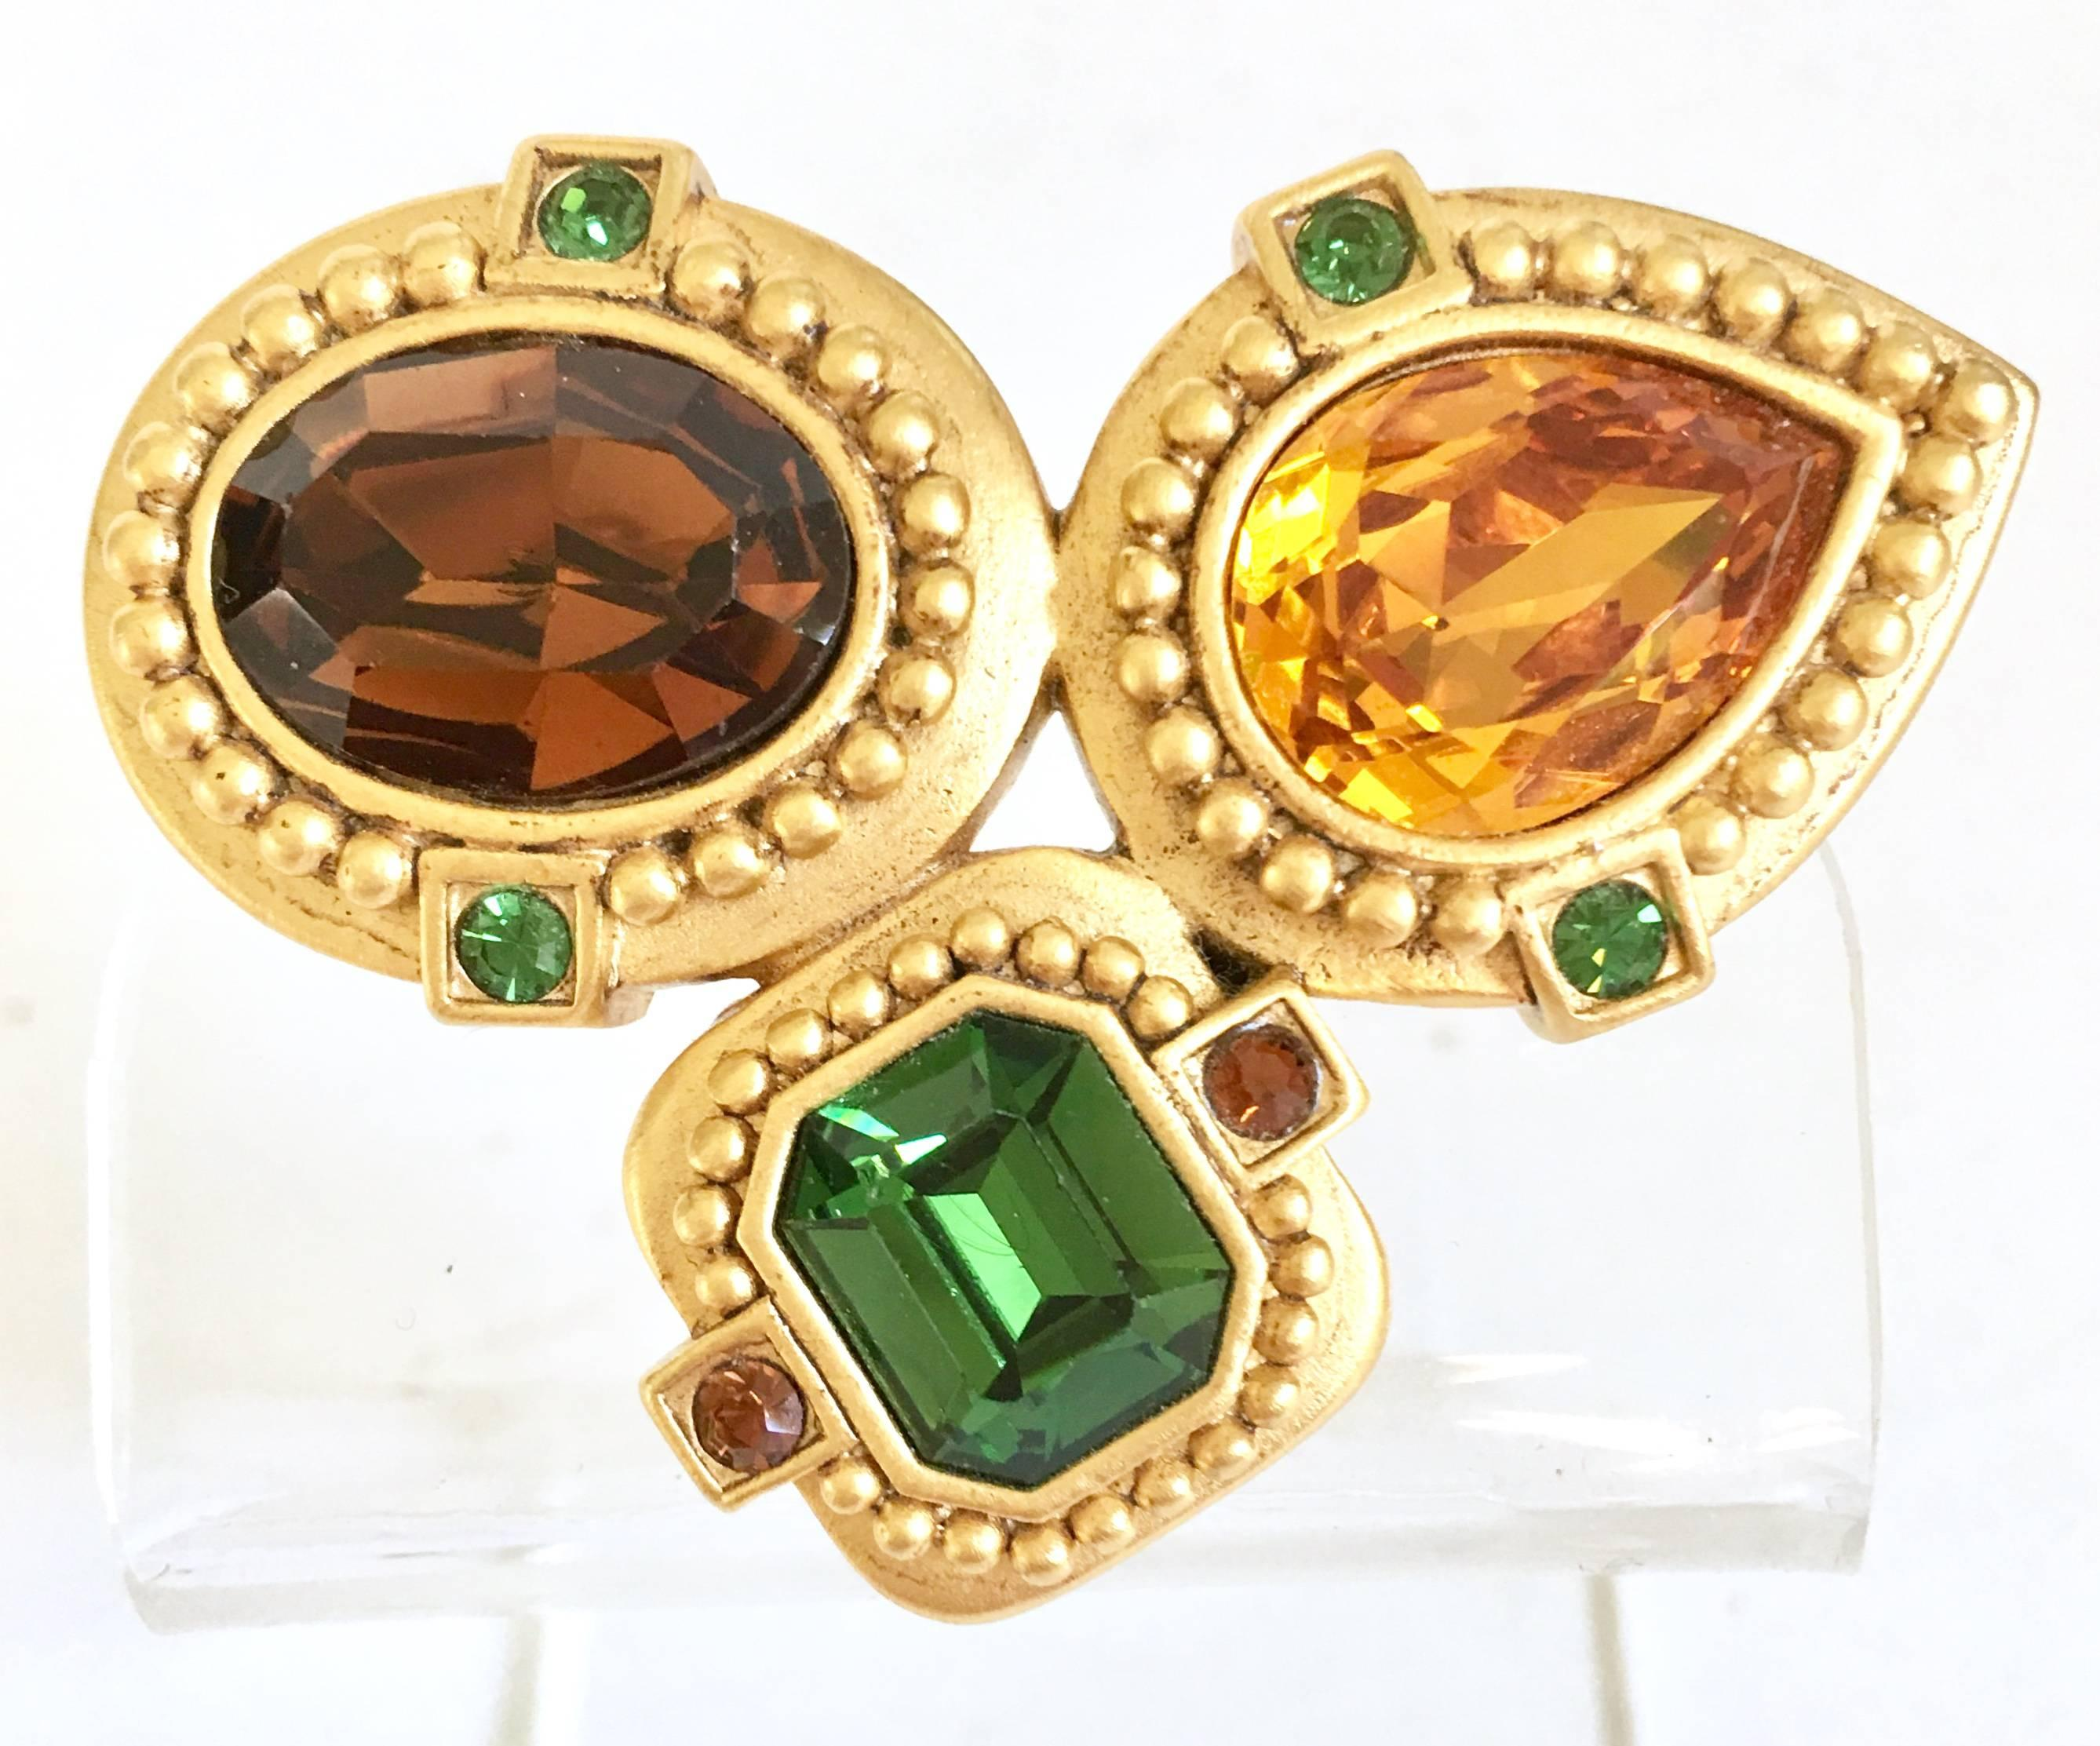 laurent v round clip for yves id gold earrings ruby on ysl jewelry red vintage full saint at gripoix master sale